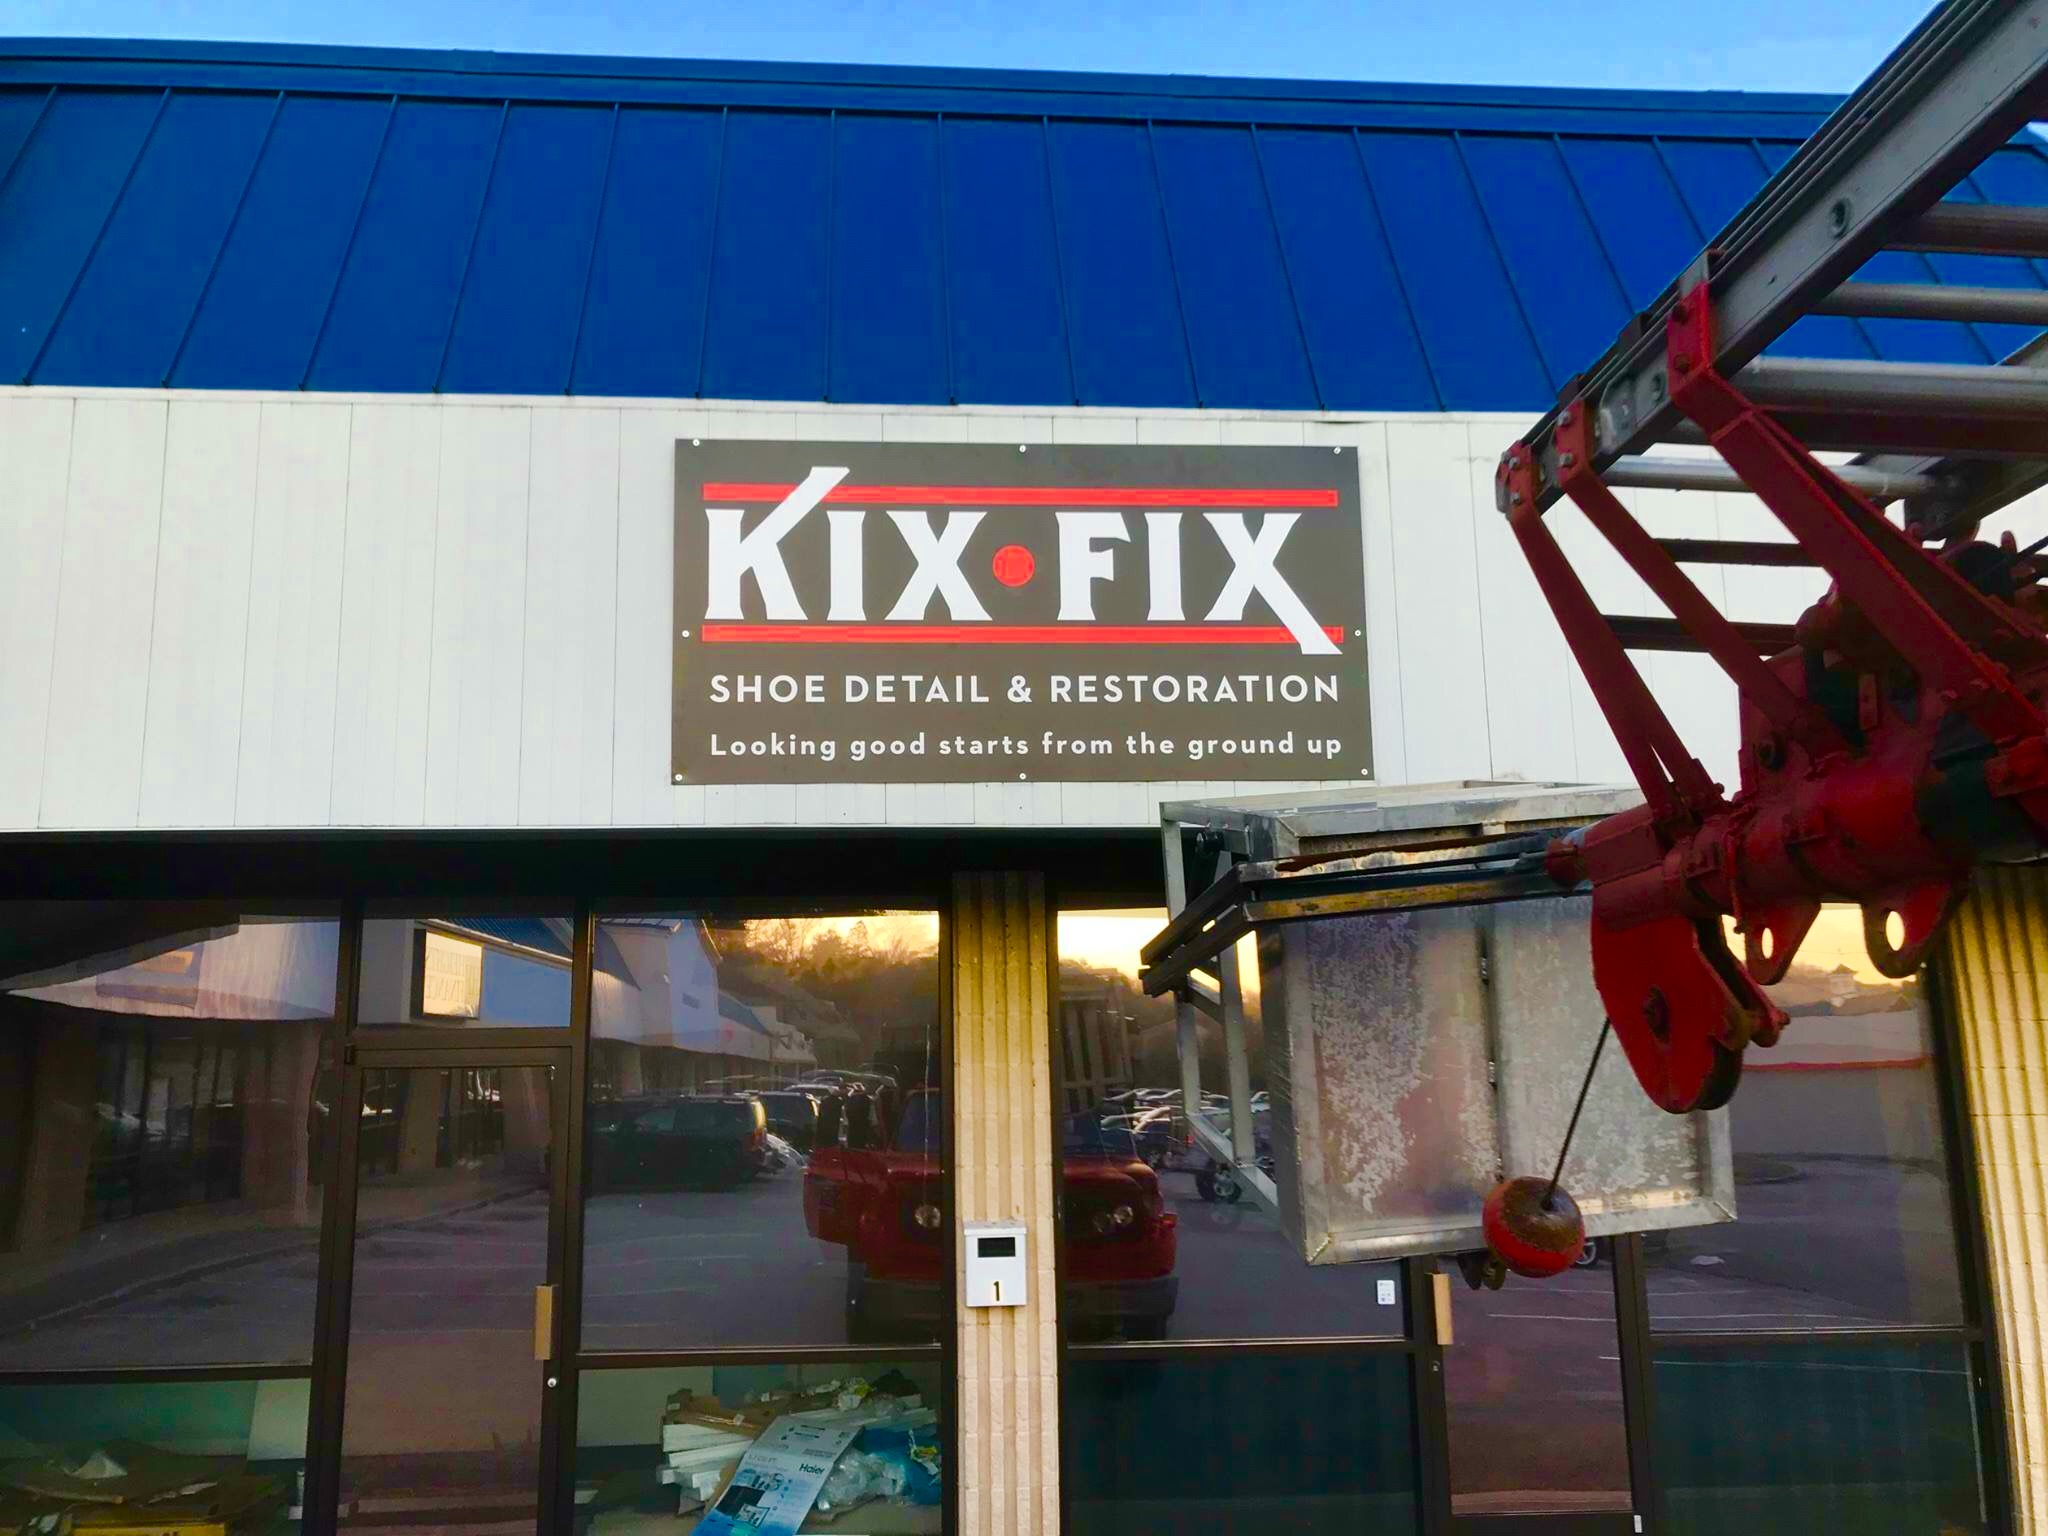 Business signs and installation